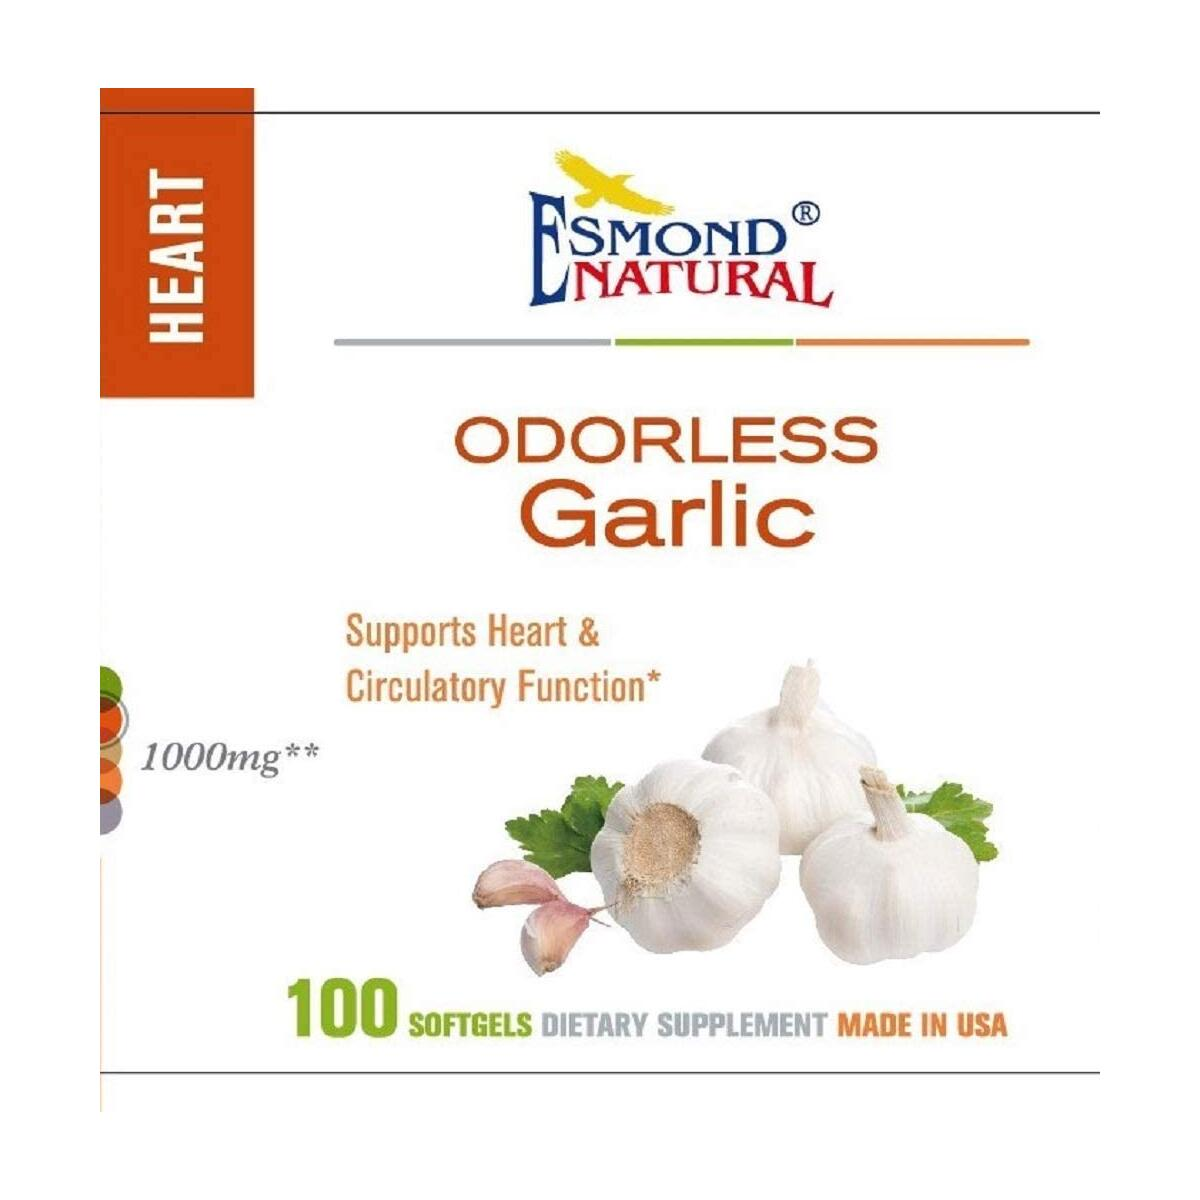 (3 Count, 10% Off) Esmond Natural: Odorless Garlic (Supports Heart & Circulatory Function), GMP, Natural Product Assn Certified, Made in USA-1000mg, 300 Softgels